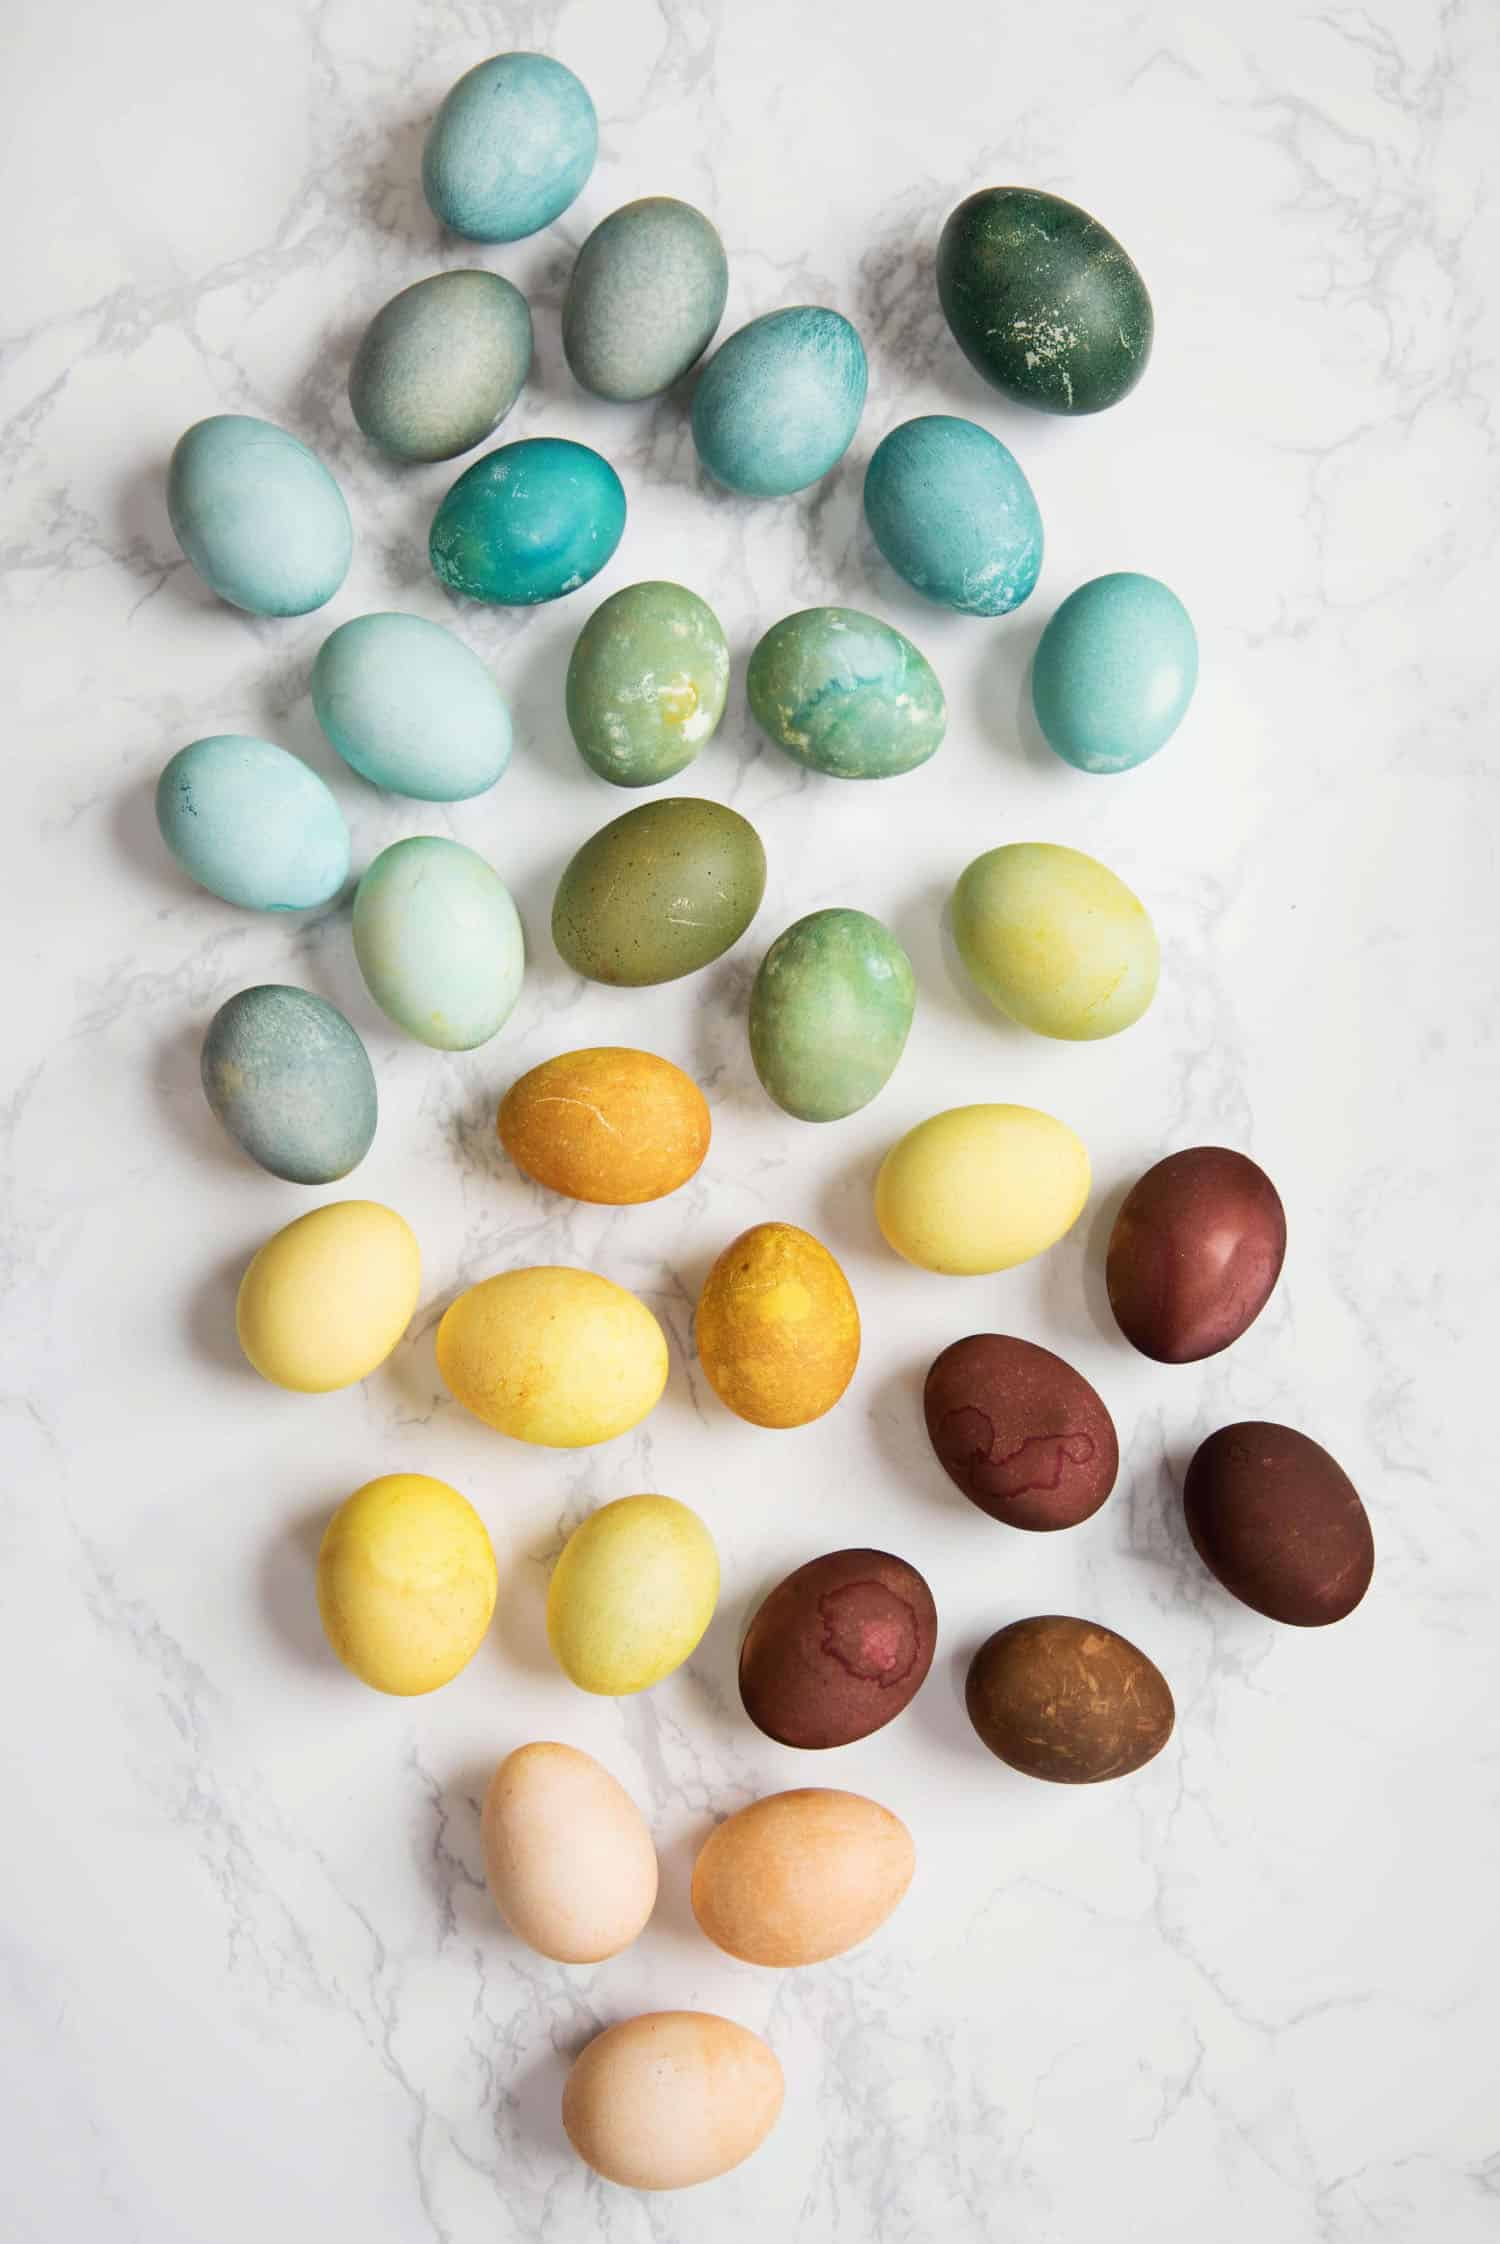 Naturally Dyed Easter Eggs - A Beautiful Mess